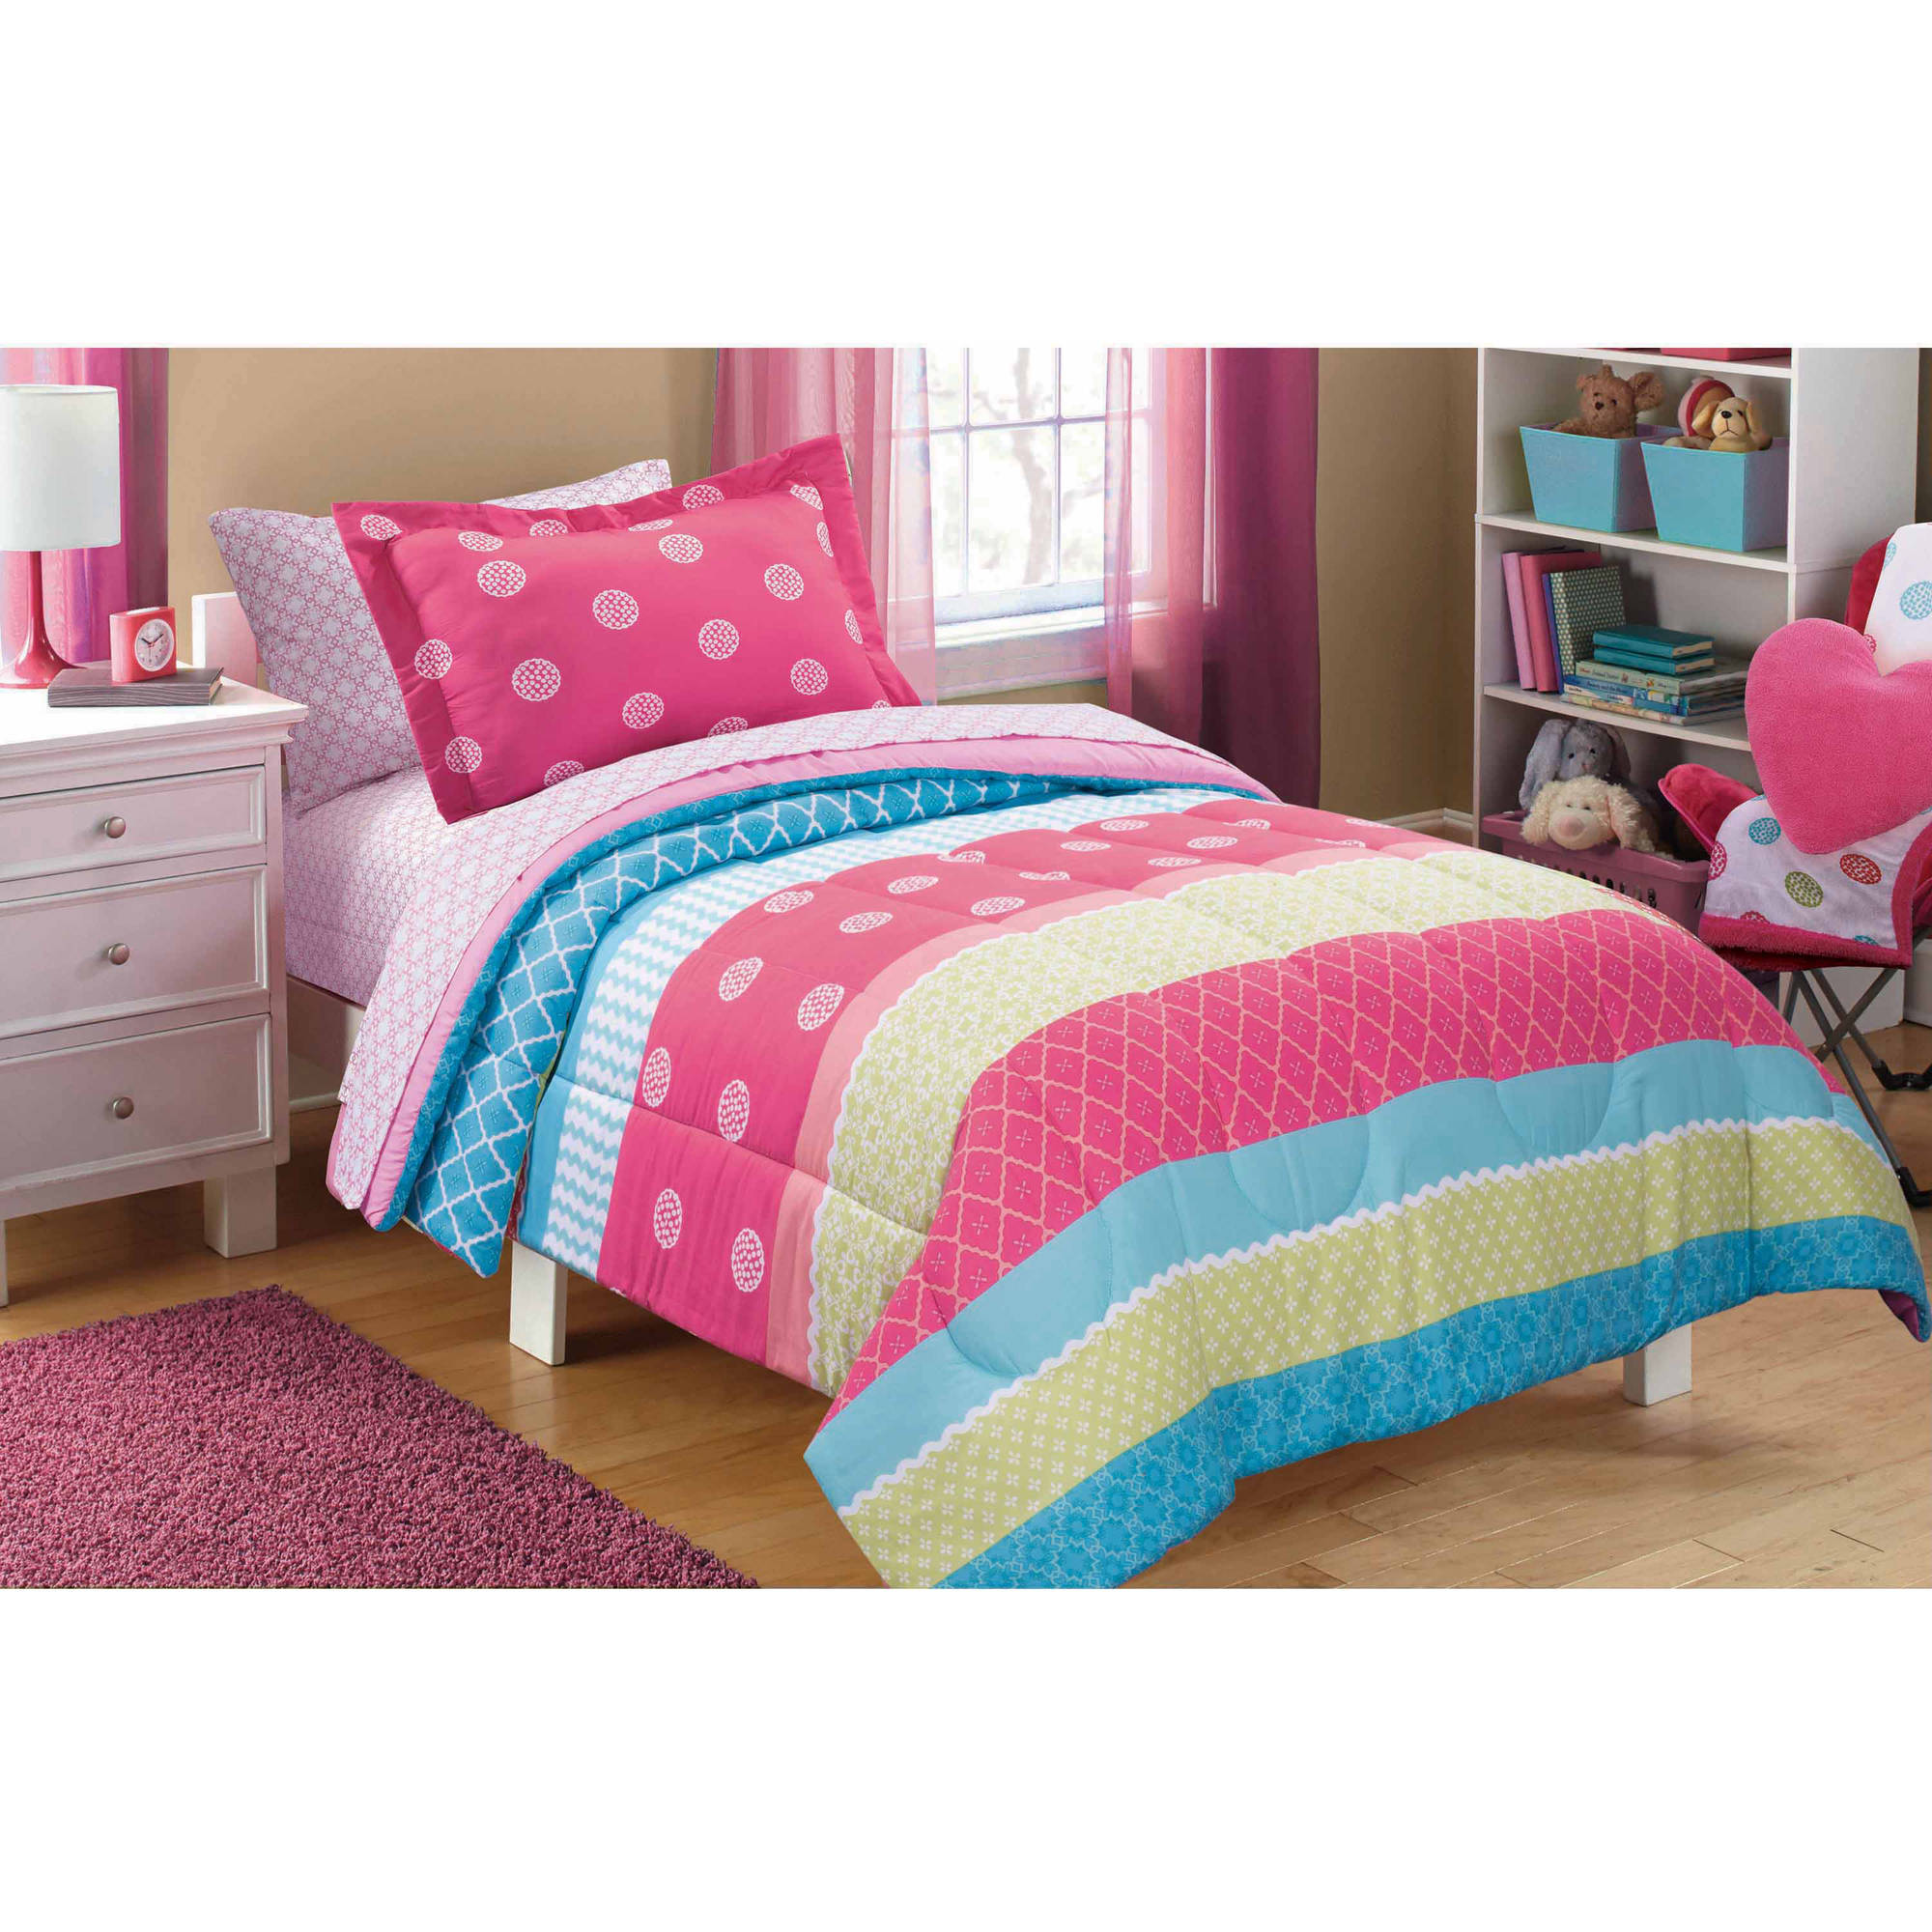 Great Mainstays Kids Mix It Up Bed In A Bag Bedding Set   Walmart.com